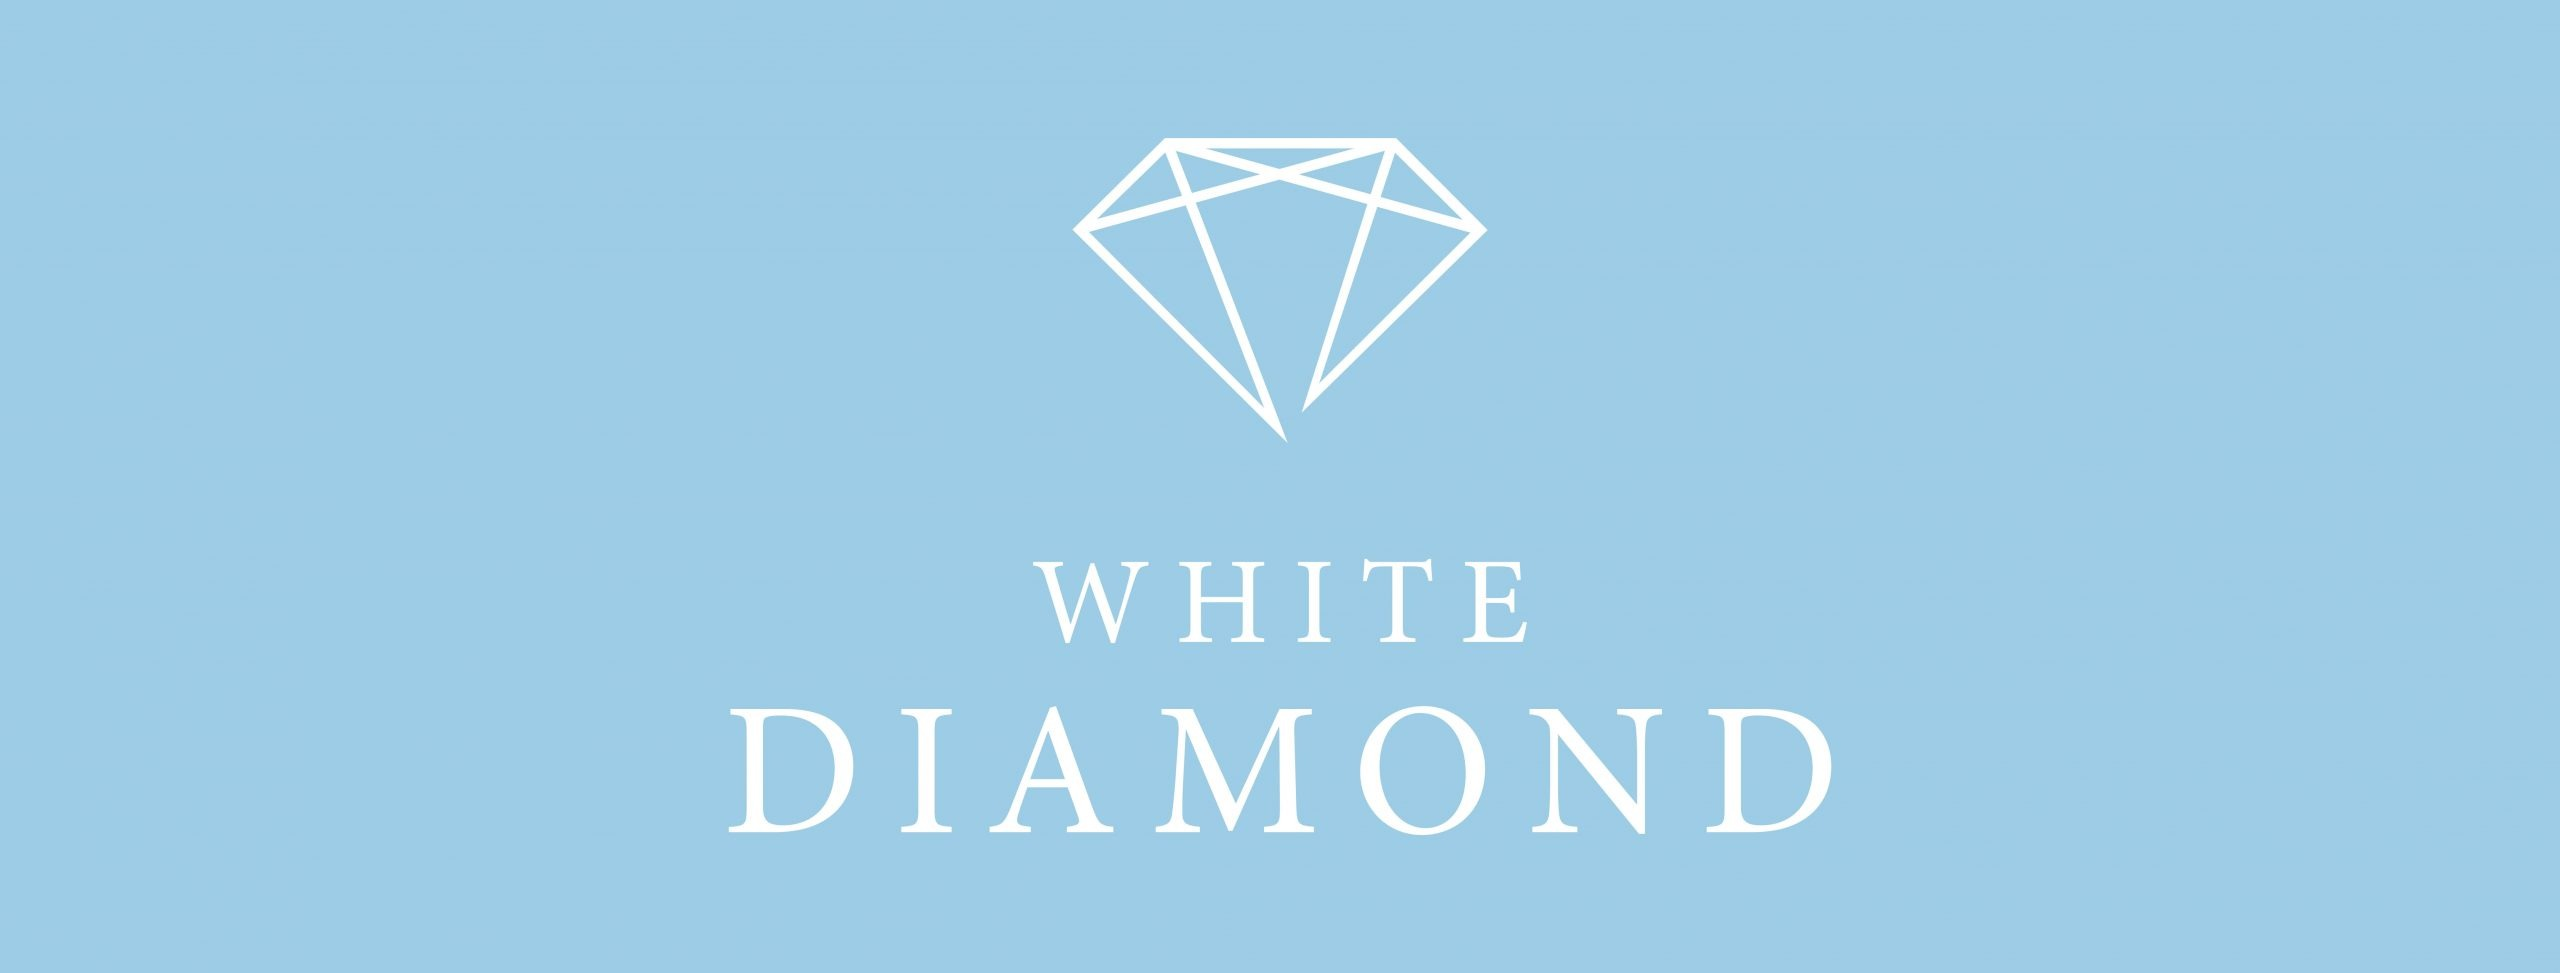 20200611_WHITE DIAMOND LOGO